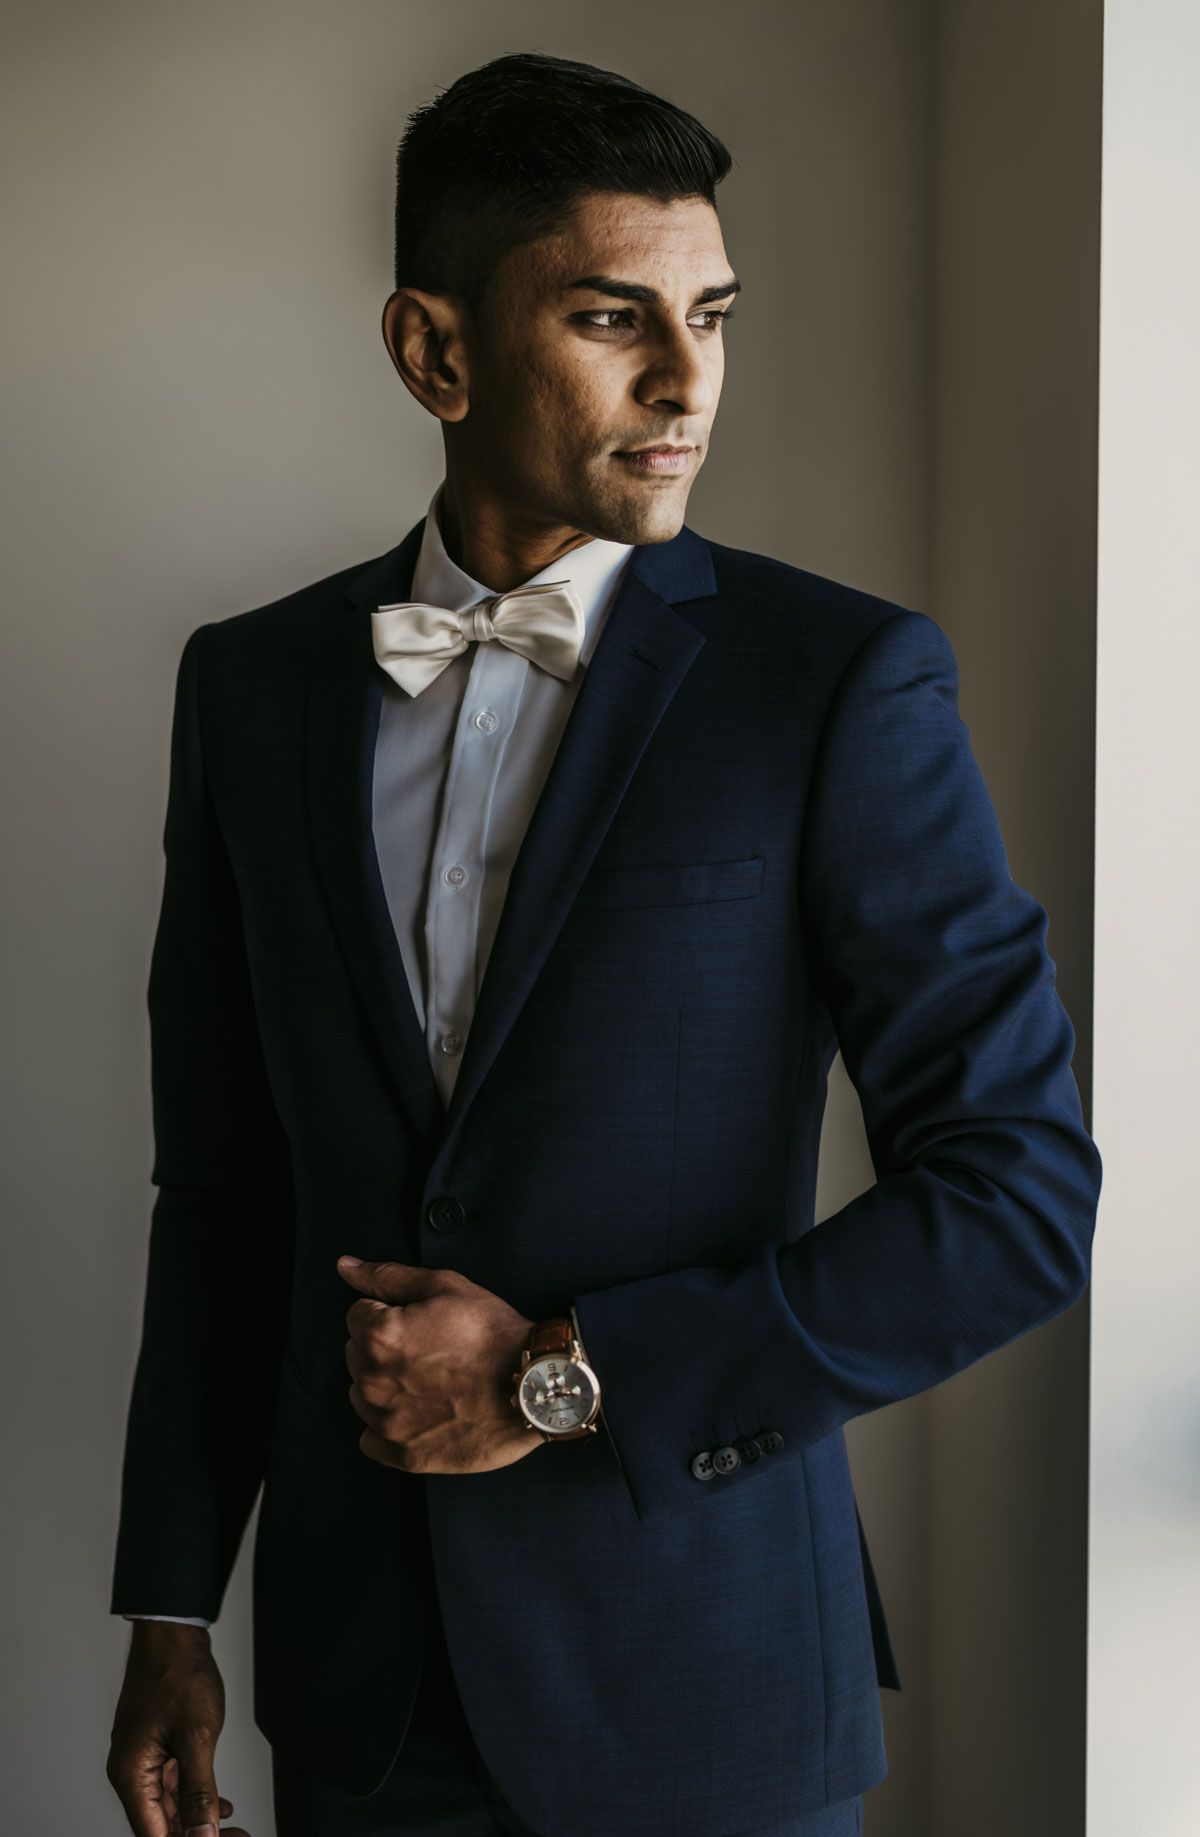 Indian groom Uppi looked dashing in his blue suit at his modern romantic fusion wedding in Brisbane, Australia. Wedding photography was beautifully captured by Sal Singh Photography.